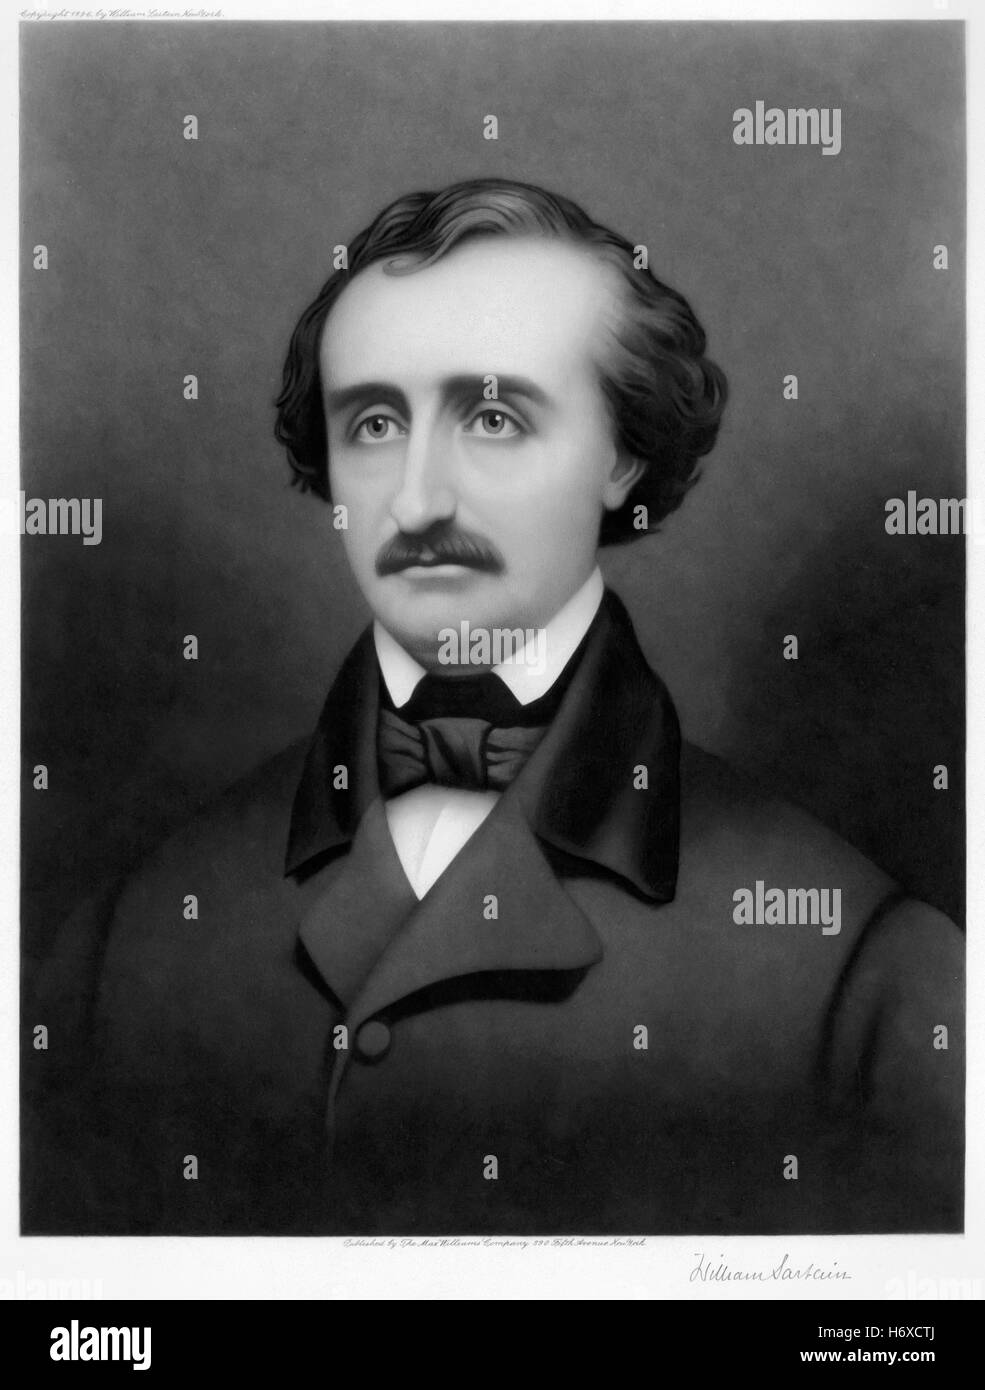 Edgar Allan Poe (1809-1849), 1896 mezzotint portrait by William Sartain (1843-1924). - Stock Image